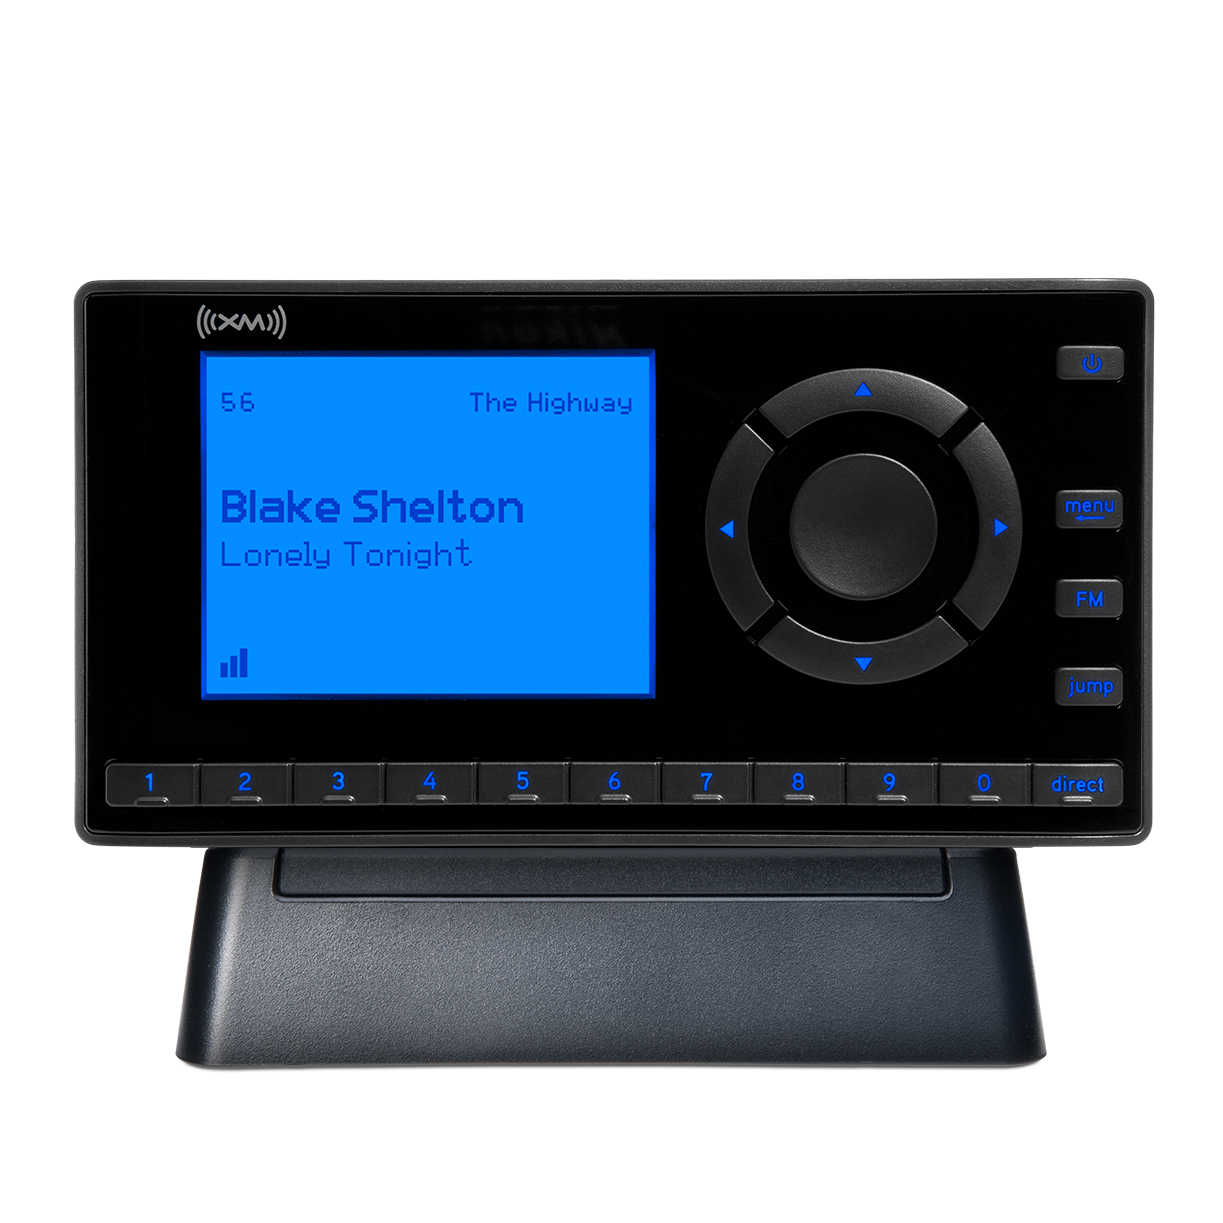 user guides shop siriusxm rh shop siriusxm com sirius sp4 manual Sirius Car Radio